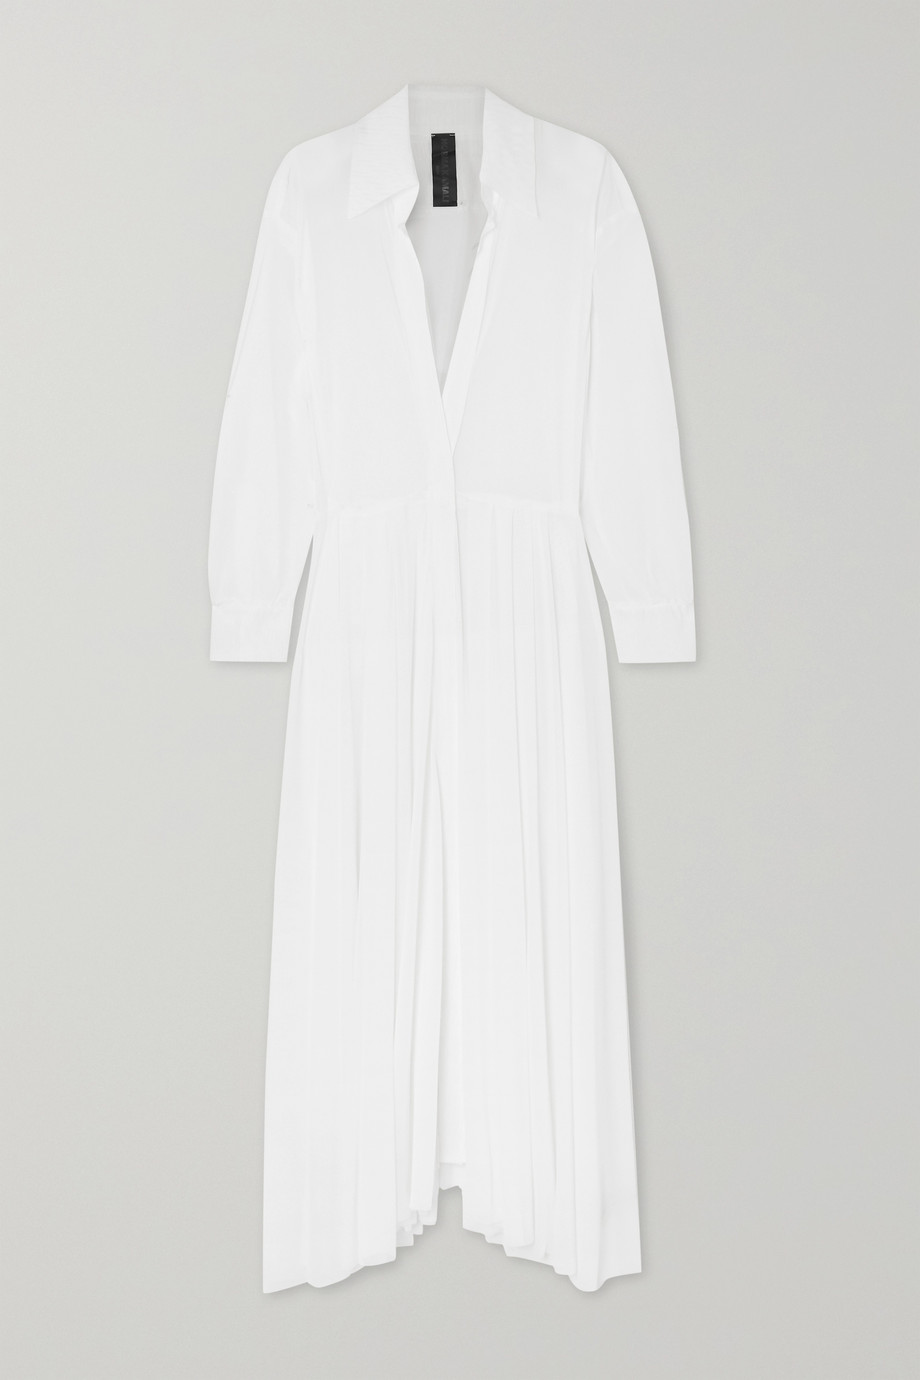 Norma Kamali | Pleated gauze maxi dress | NET-A-PORTER.COM